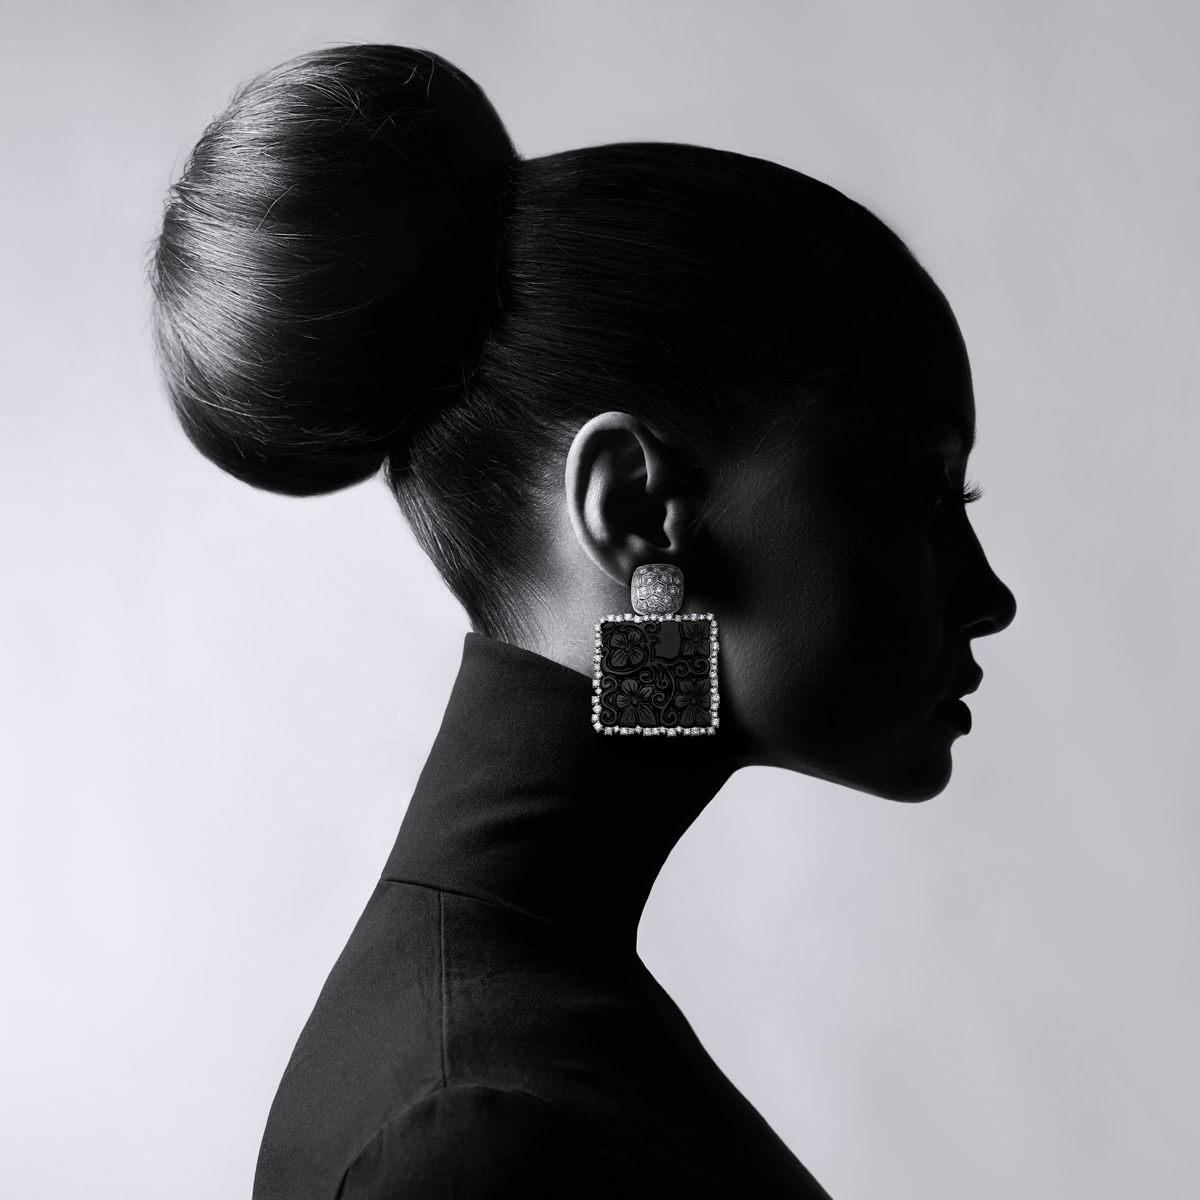 Ohrringe, Earrings, Black Jade, Diamonds, Johannes Hundt